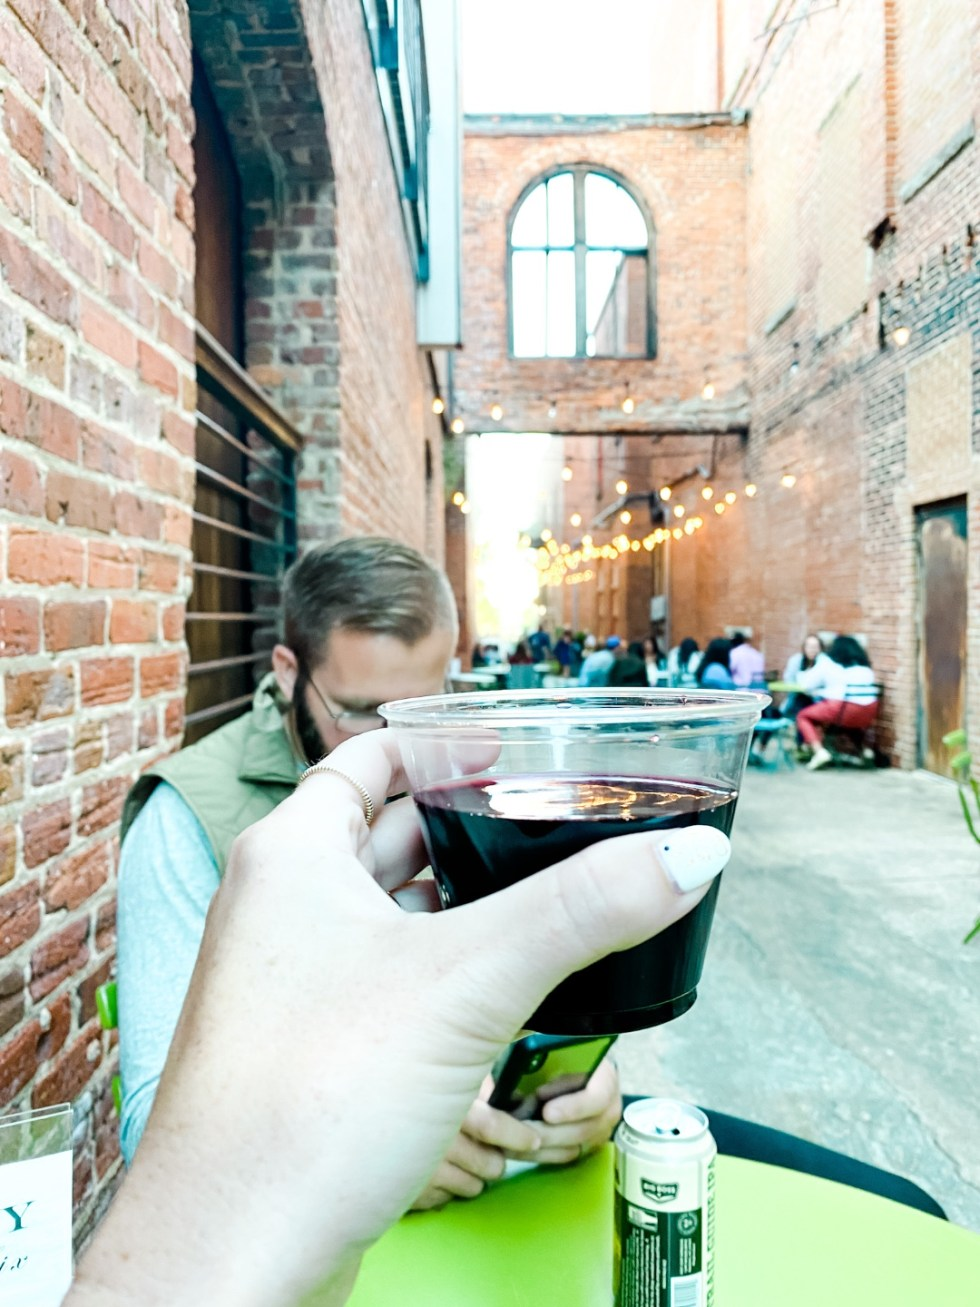 The Ultimate North Carolina Bucket List: 25 Things to See and Do - I'm Fixin' To - @imfixintoblog